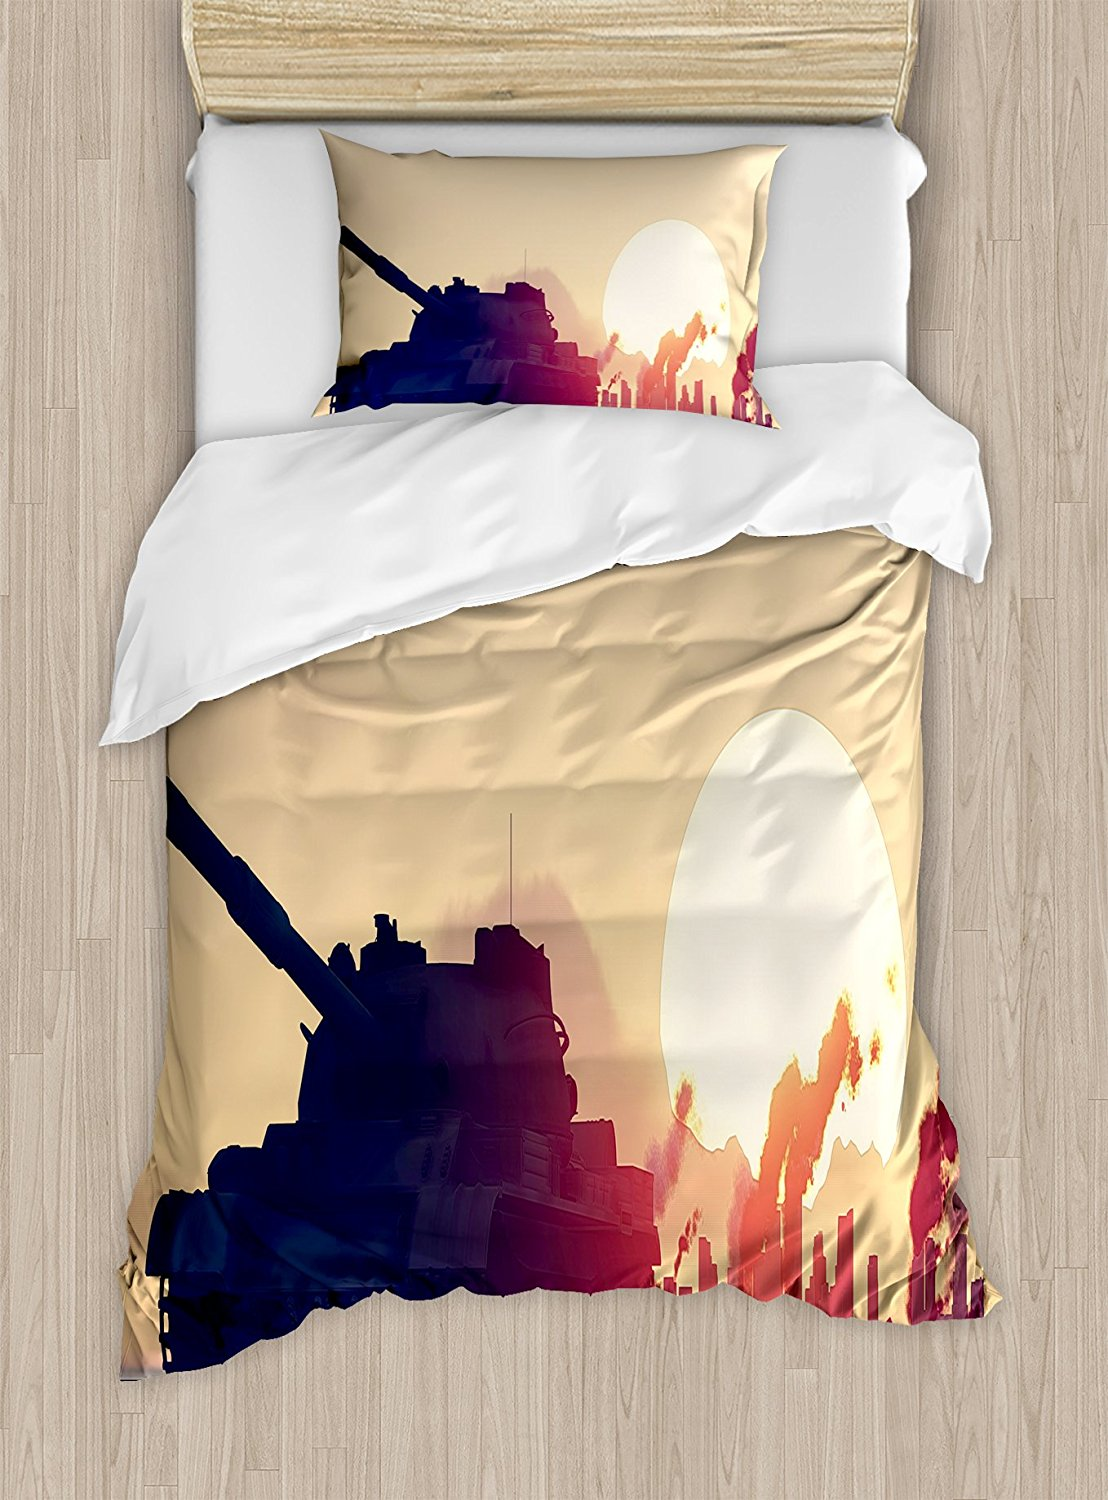 Military Duvet Cover Set Tank and Ruined City Skyscrapers Landscape at Sunset Flames and Smokes in City 4 Piece Bedding Set